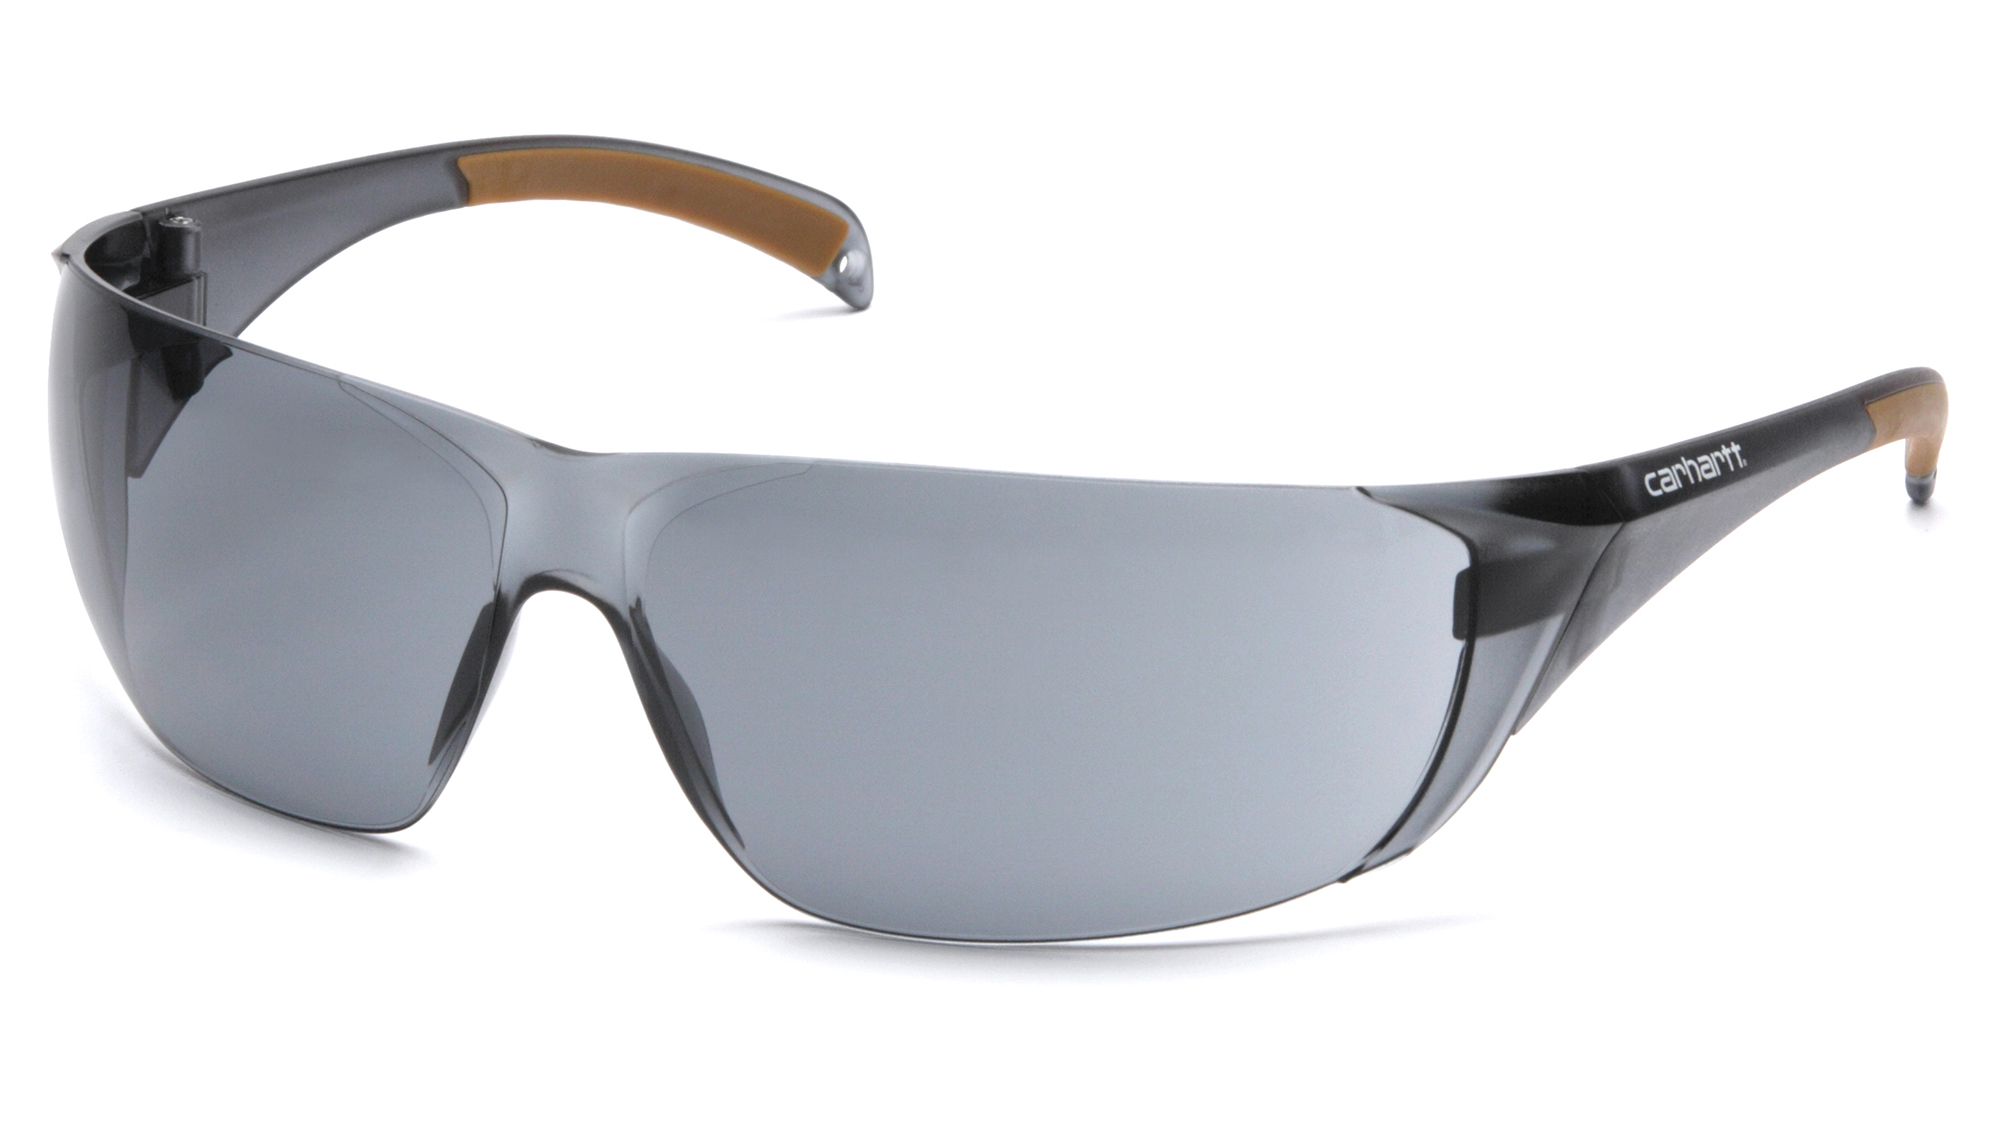 Carhartt Billings Gray Anti-Fog Lens Safety Glasses -Safety Glasses